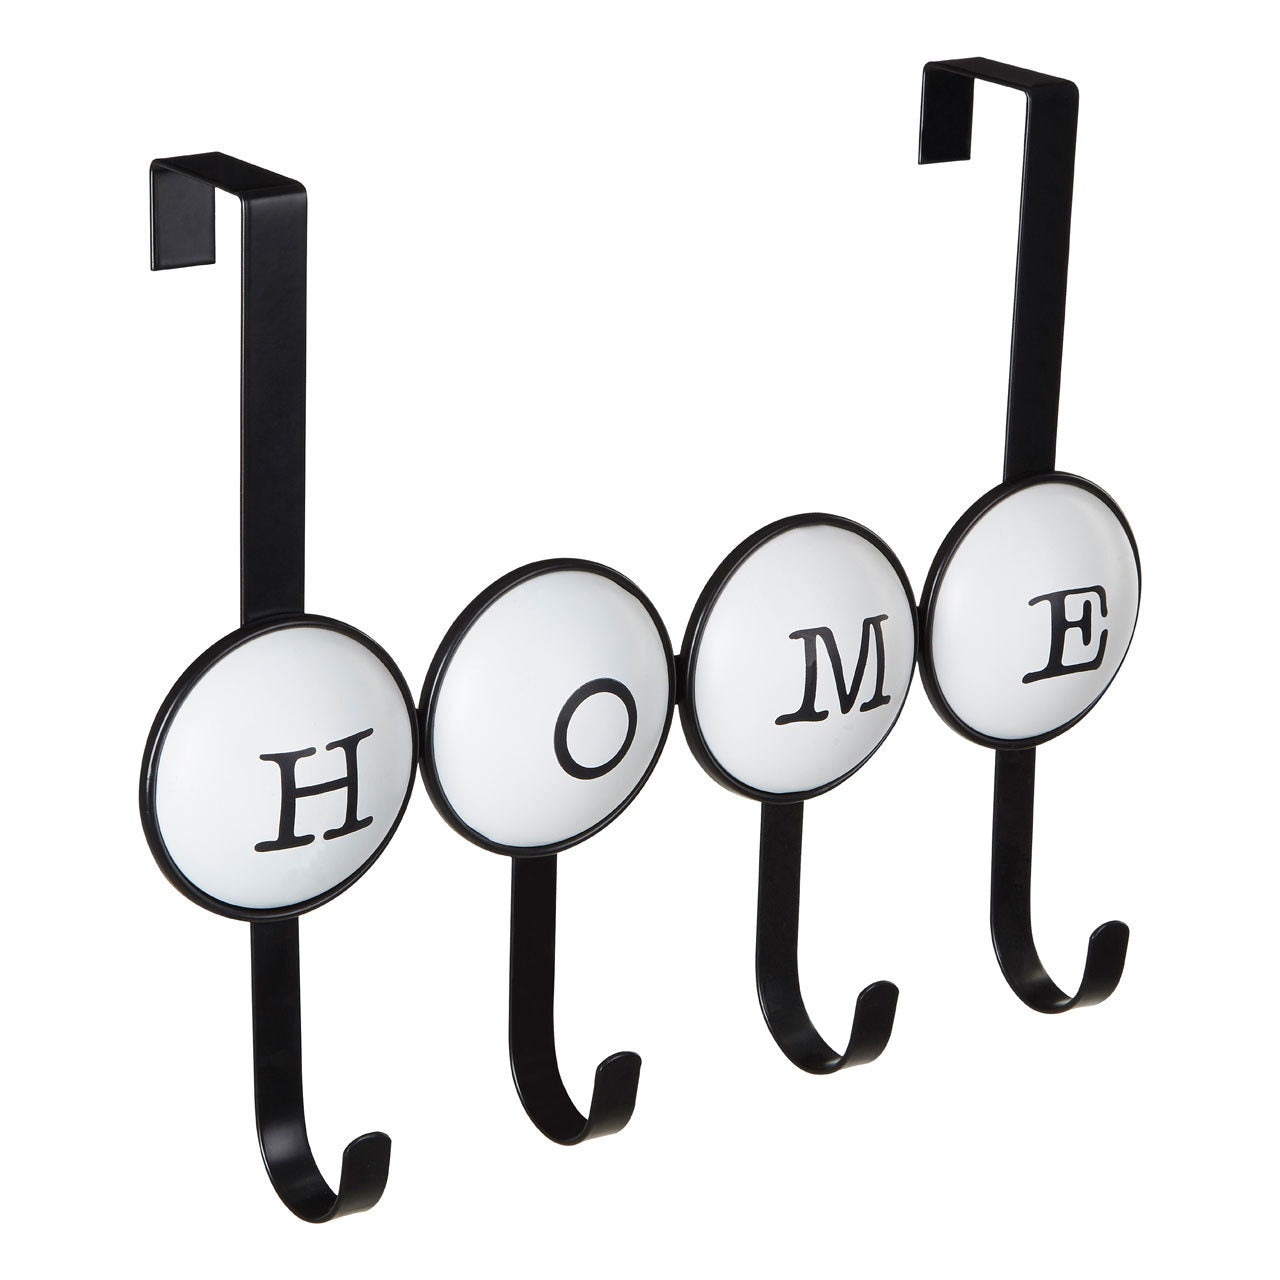 PREMIER HOME 4 HOOK OVER DOOR HANGER BLACK/WHITE - 0509908